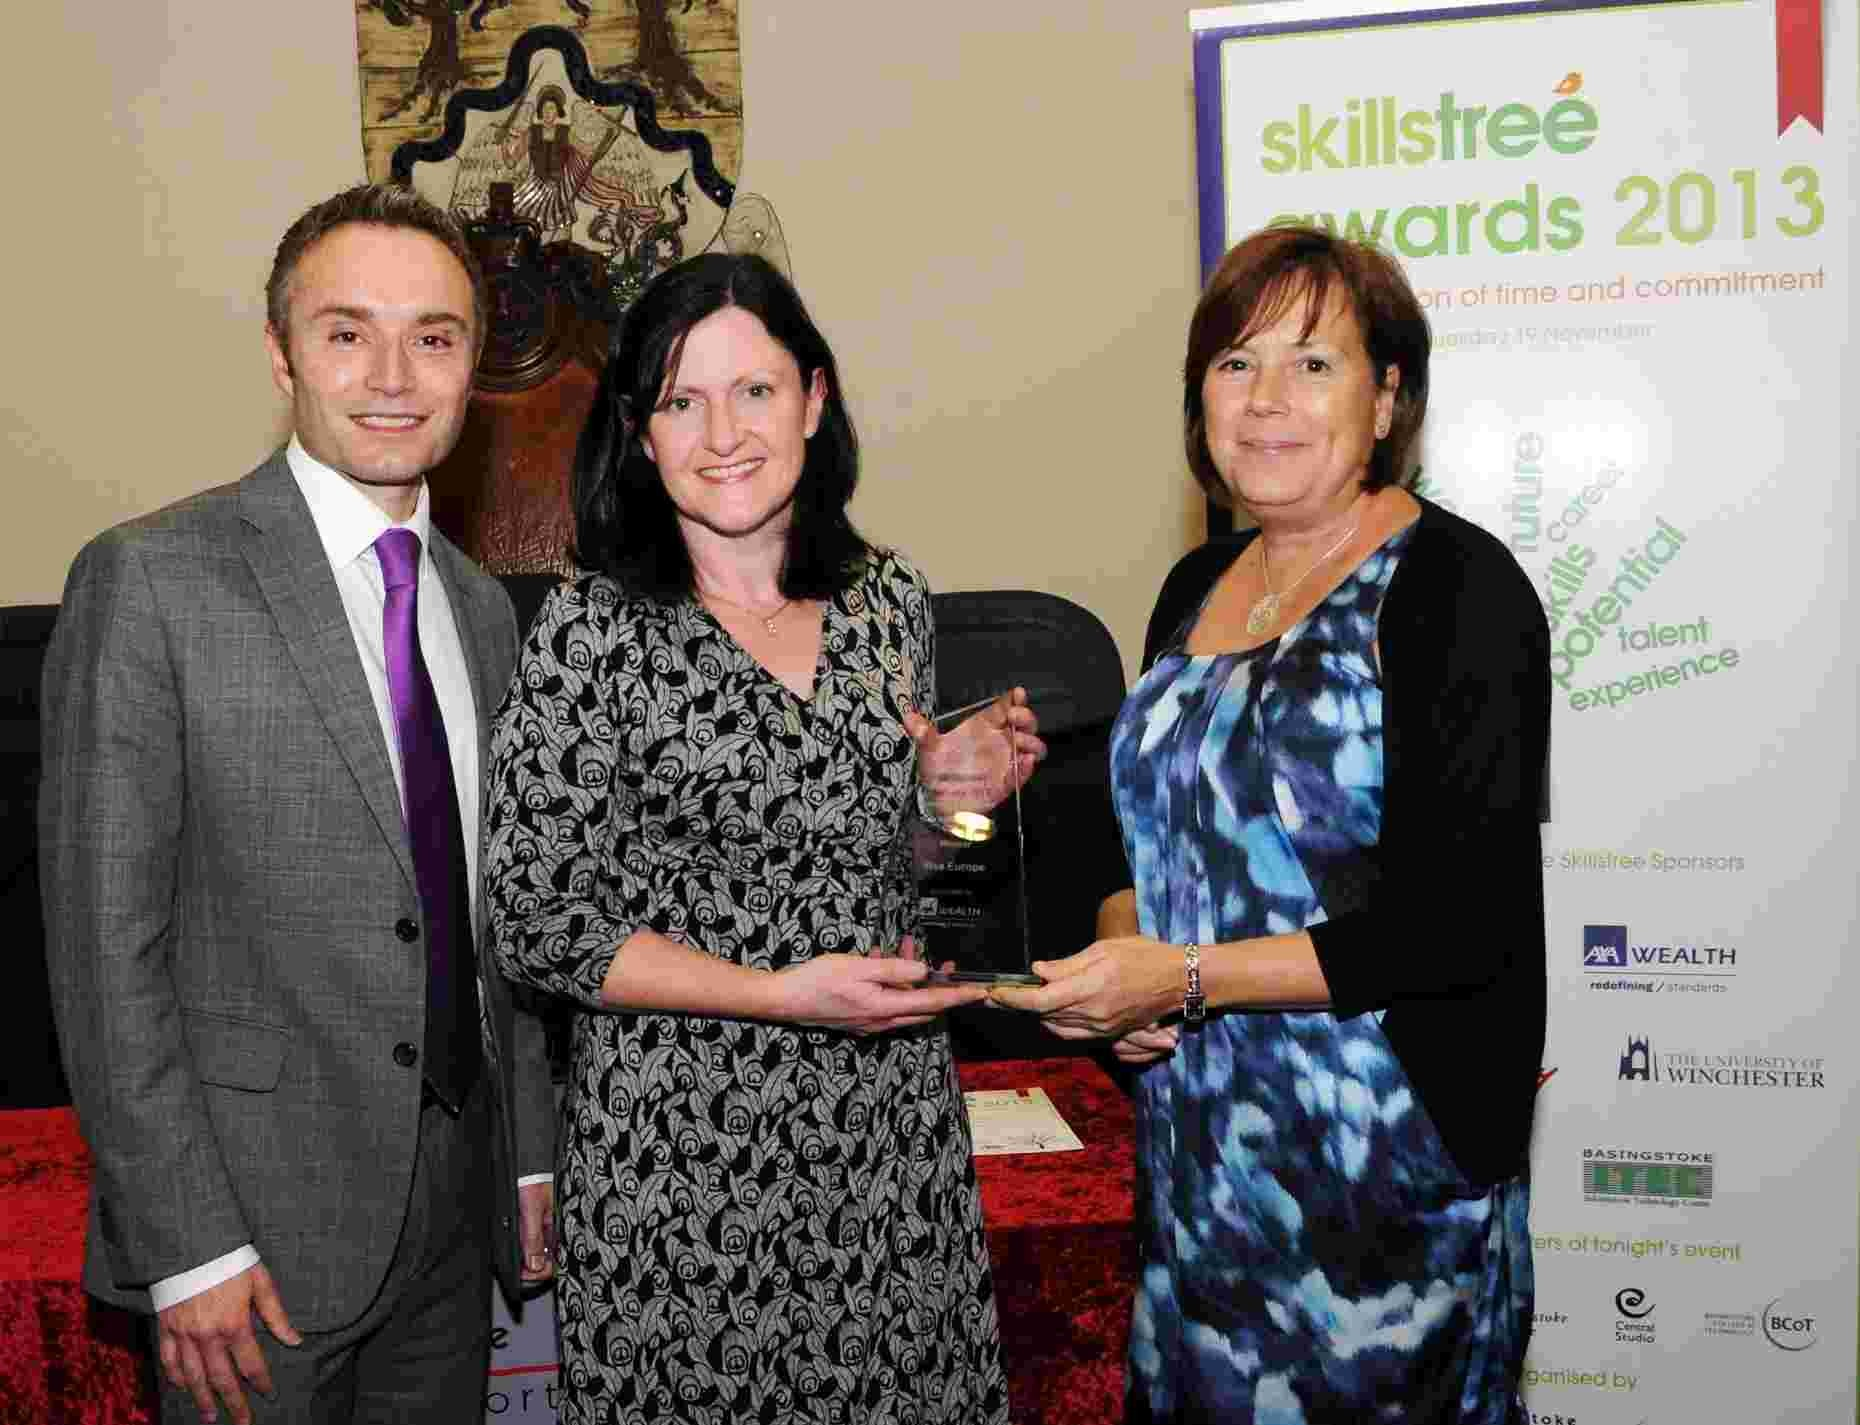 BBC South Today presenter David Allard with Nicola Law from VISA Europe, which won the Business Supporting Enterprise and Work Related Learning Award, and Carel Rose, from award sponsor AXA Wealth